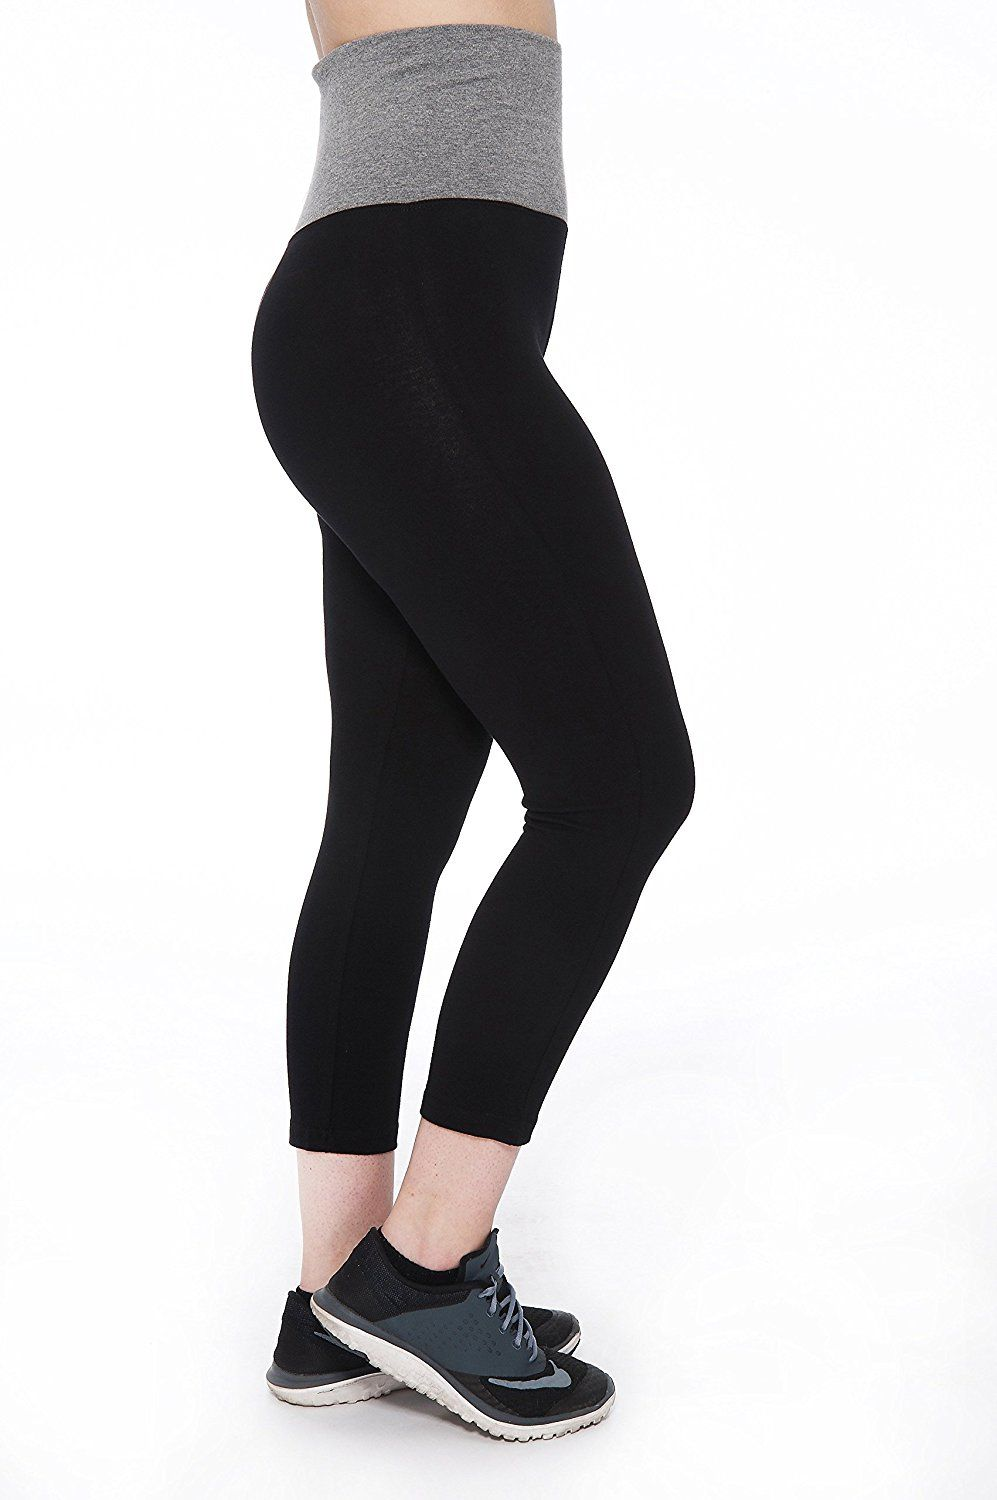 8092a28ae913b Unique Styles Fold-over Colored Waistband Stretchy Cotton-Blend Yoga Capri  Pants Price: $6.99